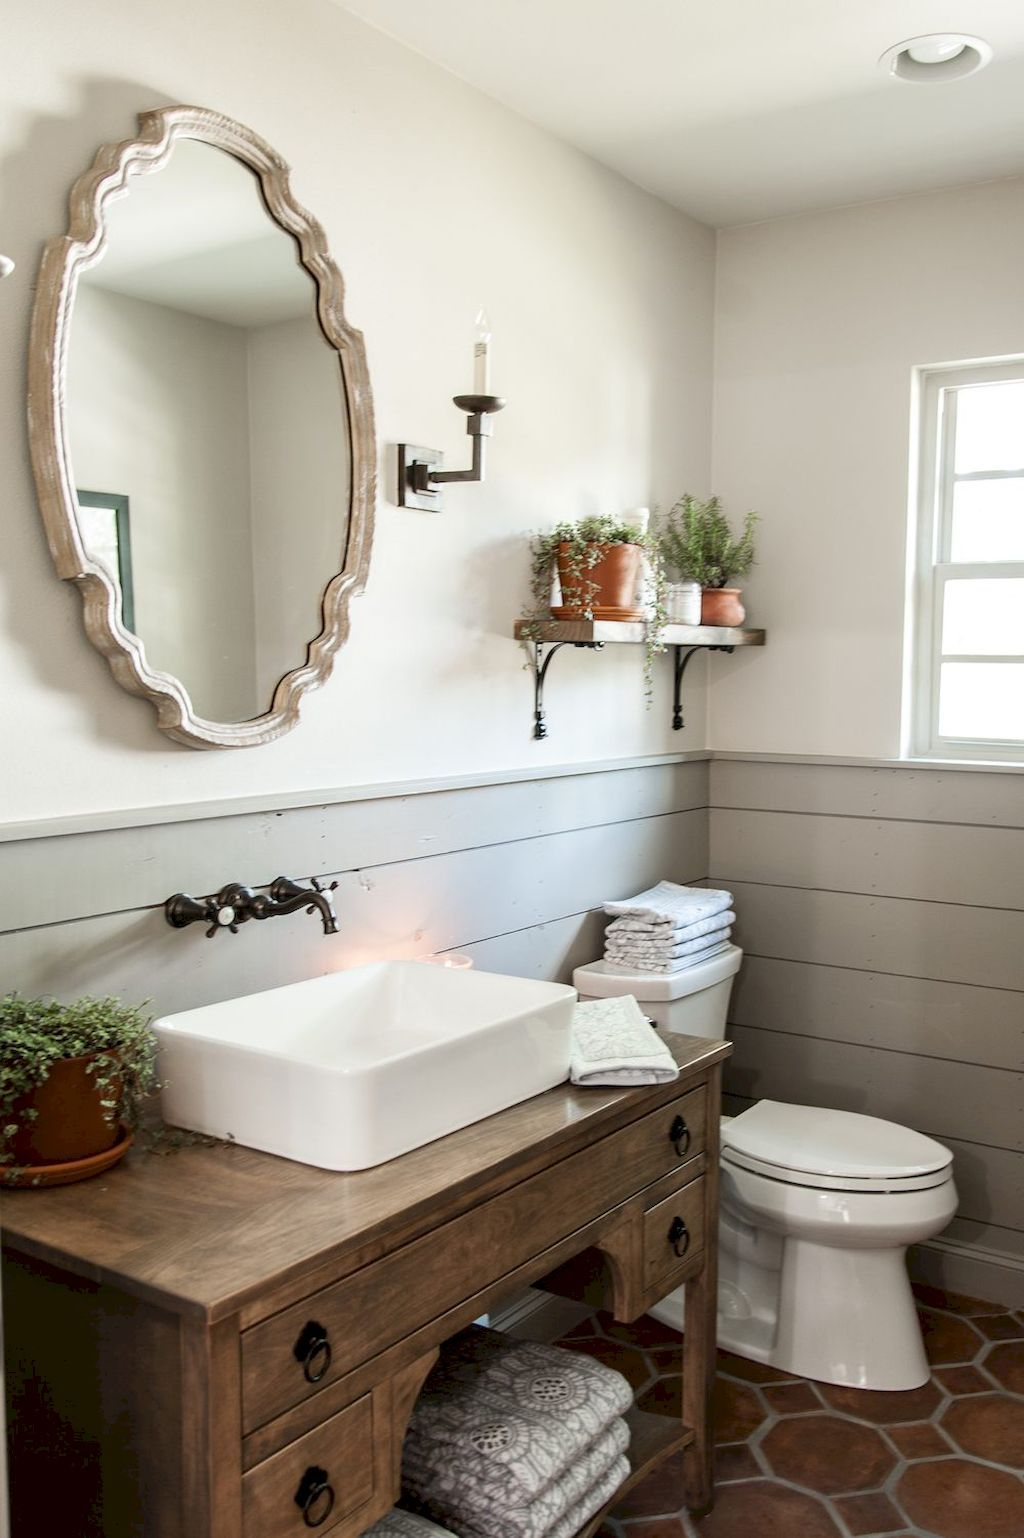 Pin by insidecorate.com on Bathroom Remodel Design Ideas | Pinterest ...